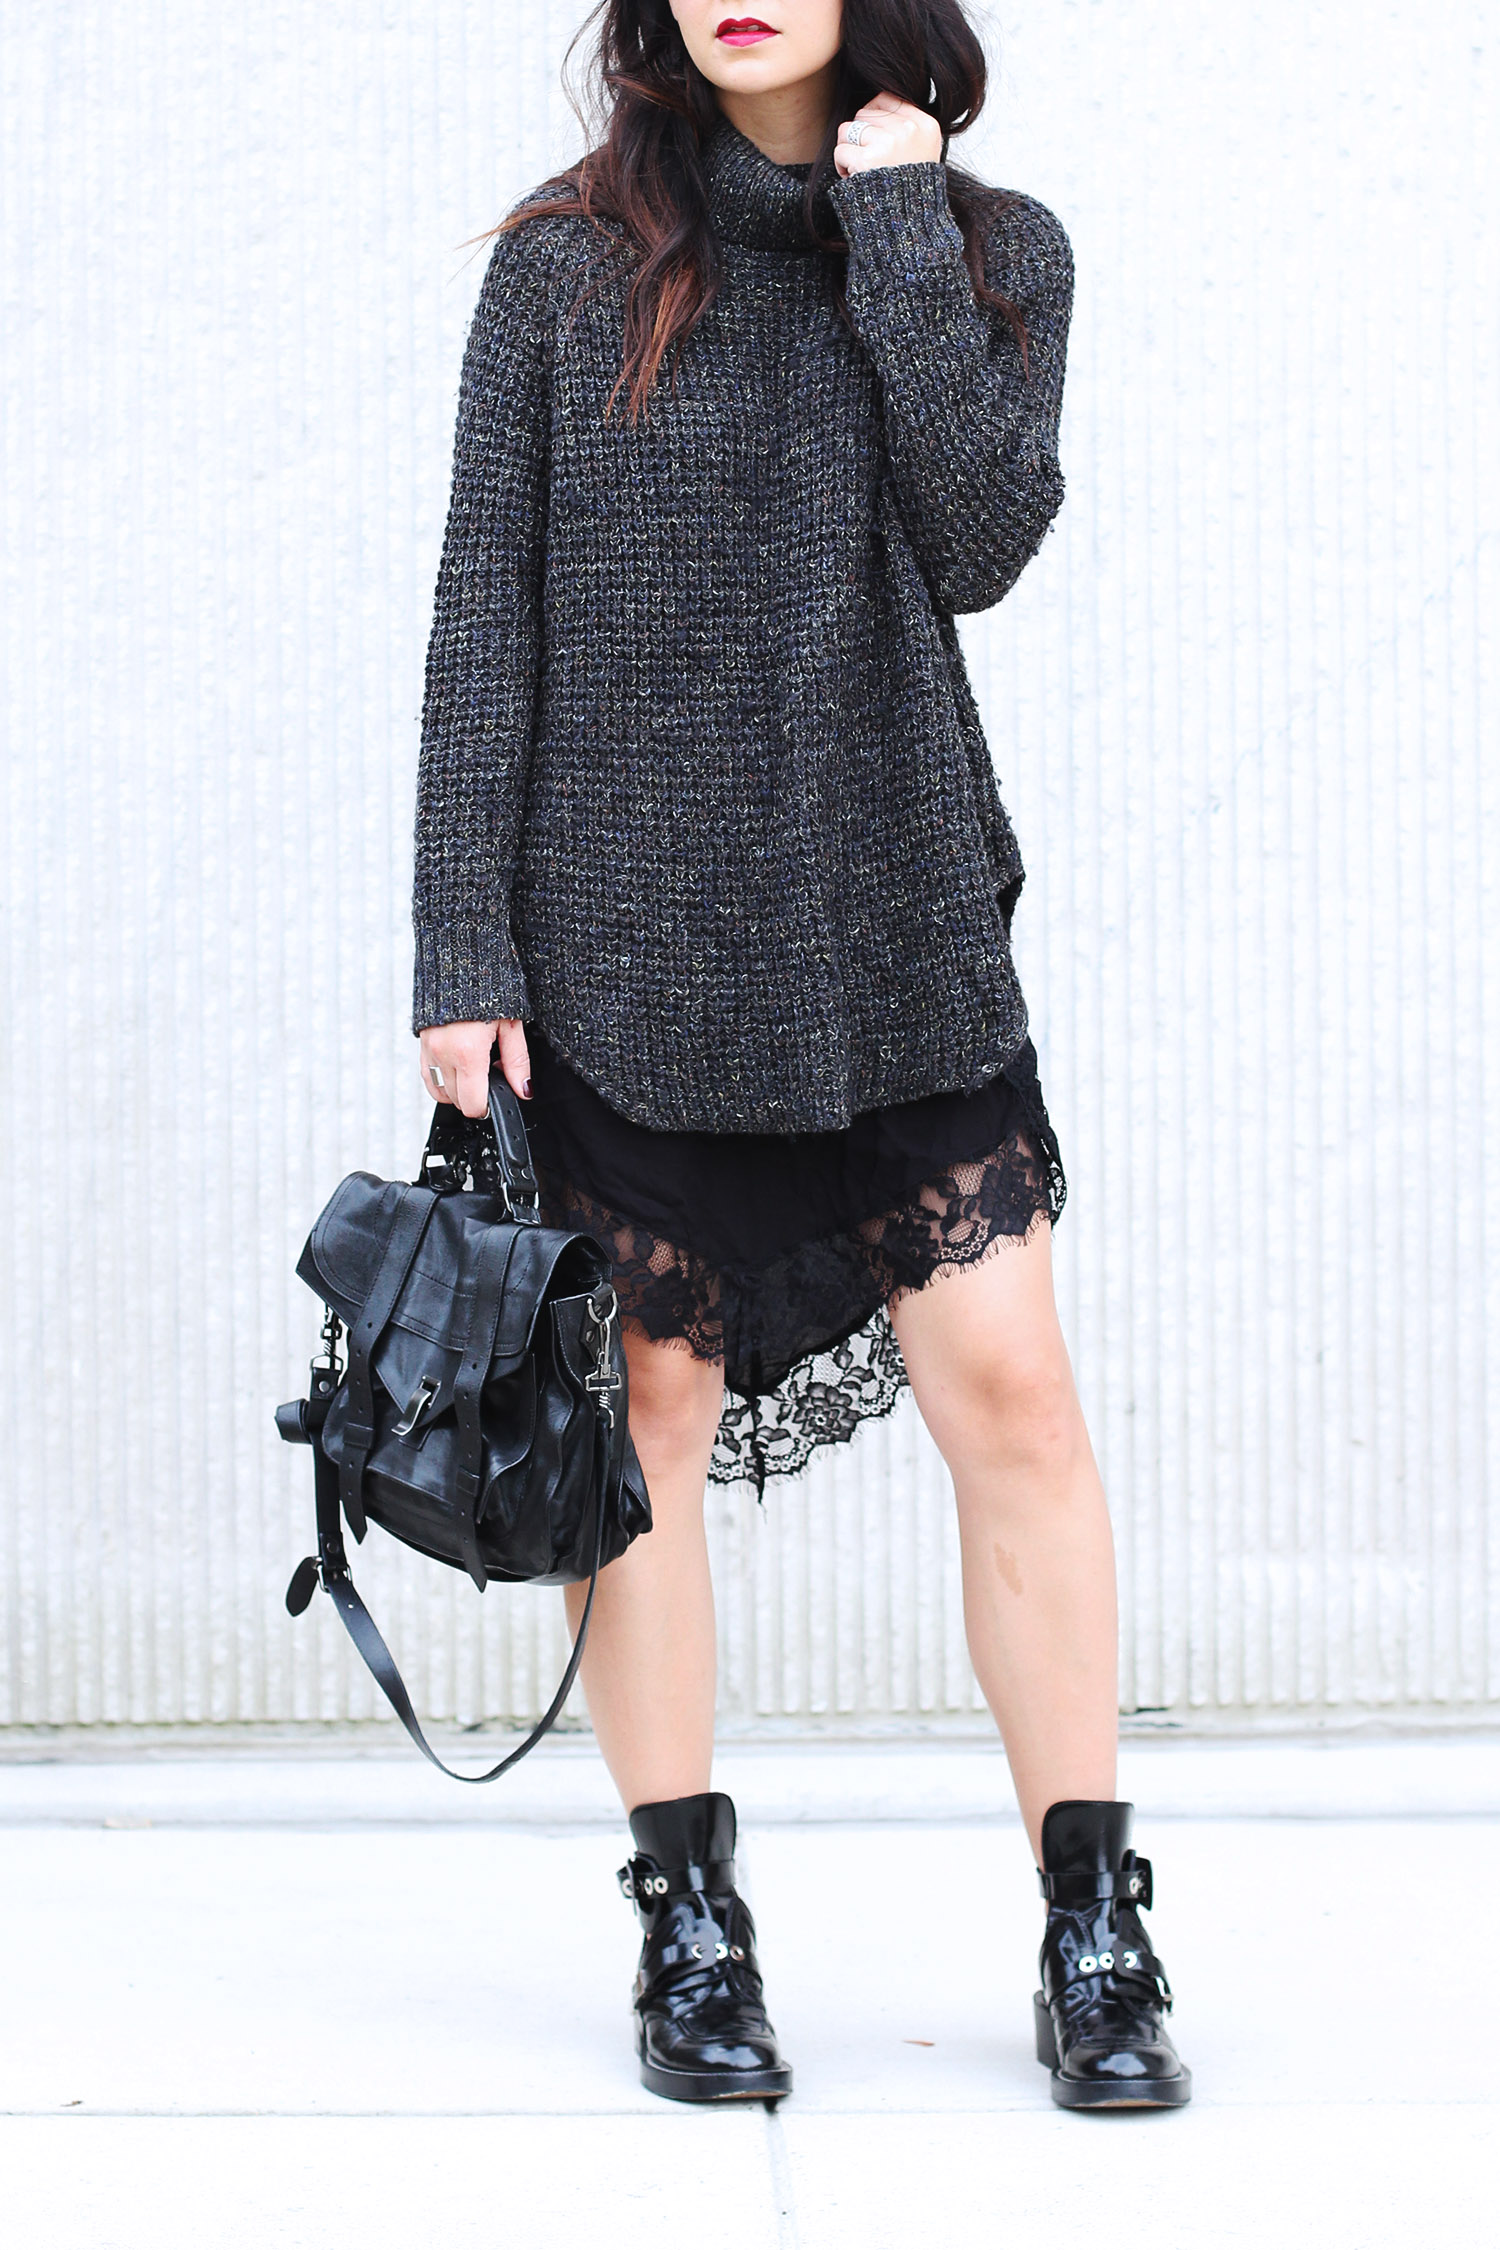 Lace slip dress under a sweater, Moto Boots